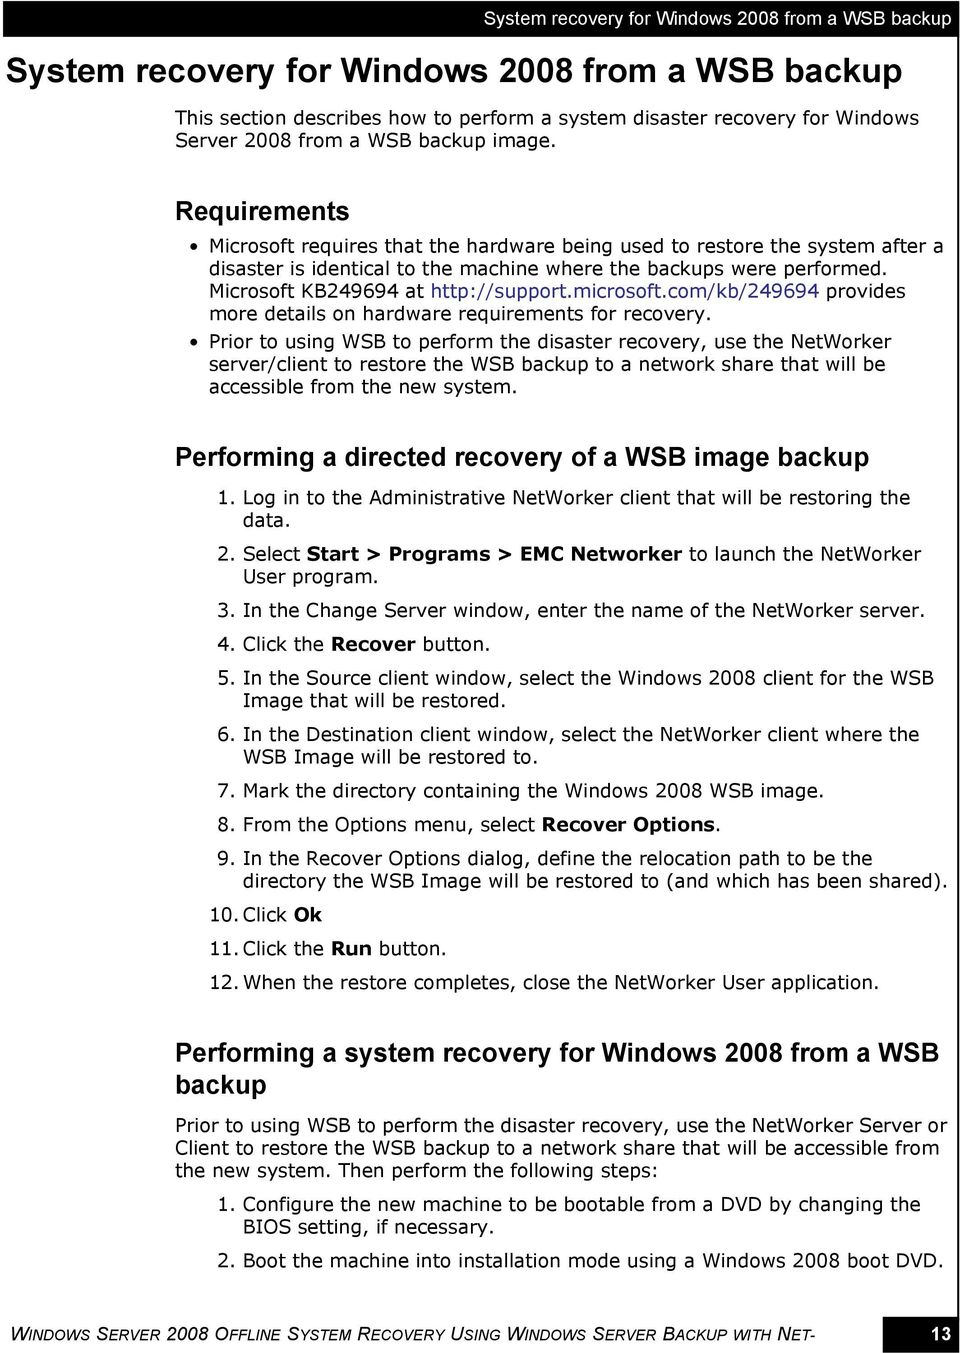 Microsoft KB249694 at http://support.microsoft.com/kb/249694 provides more details on hardware requirements for recovery.